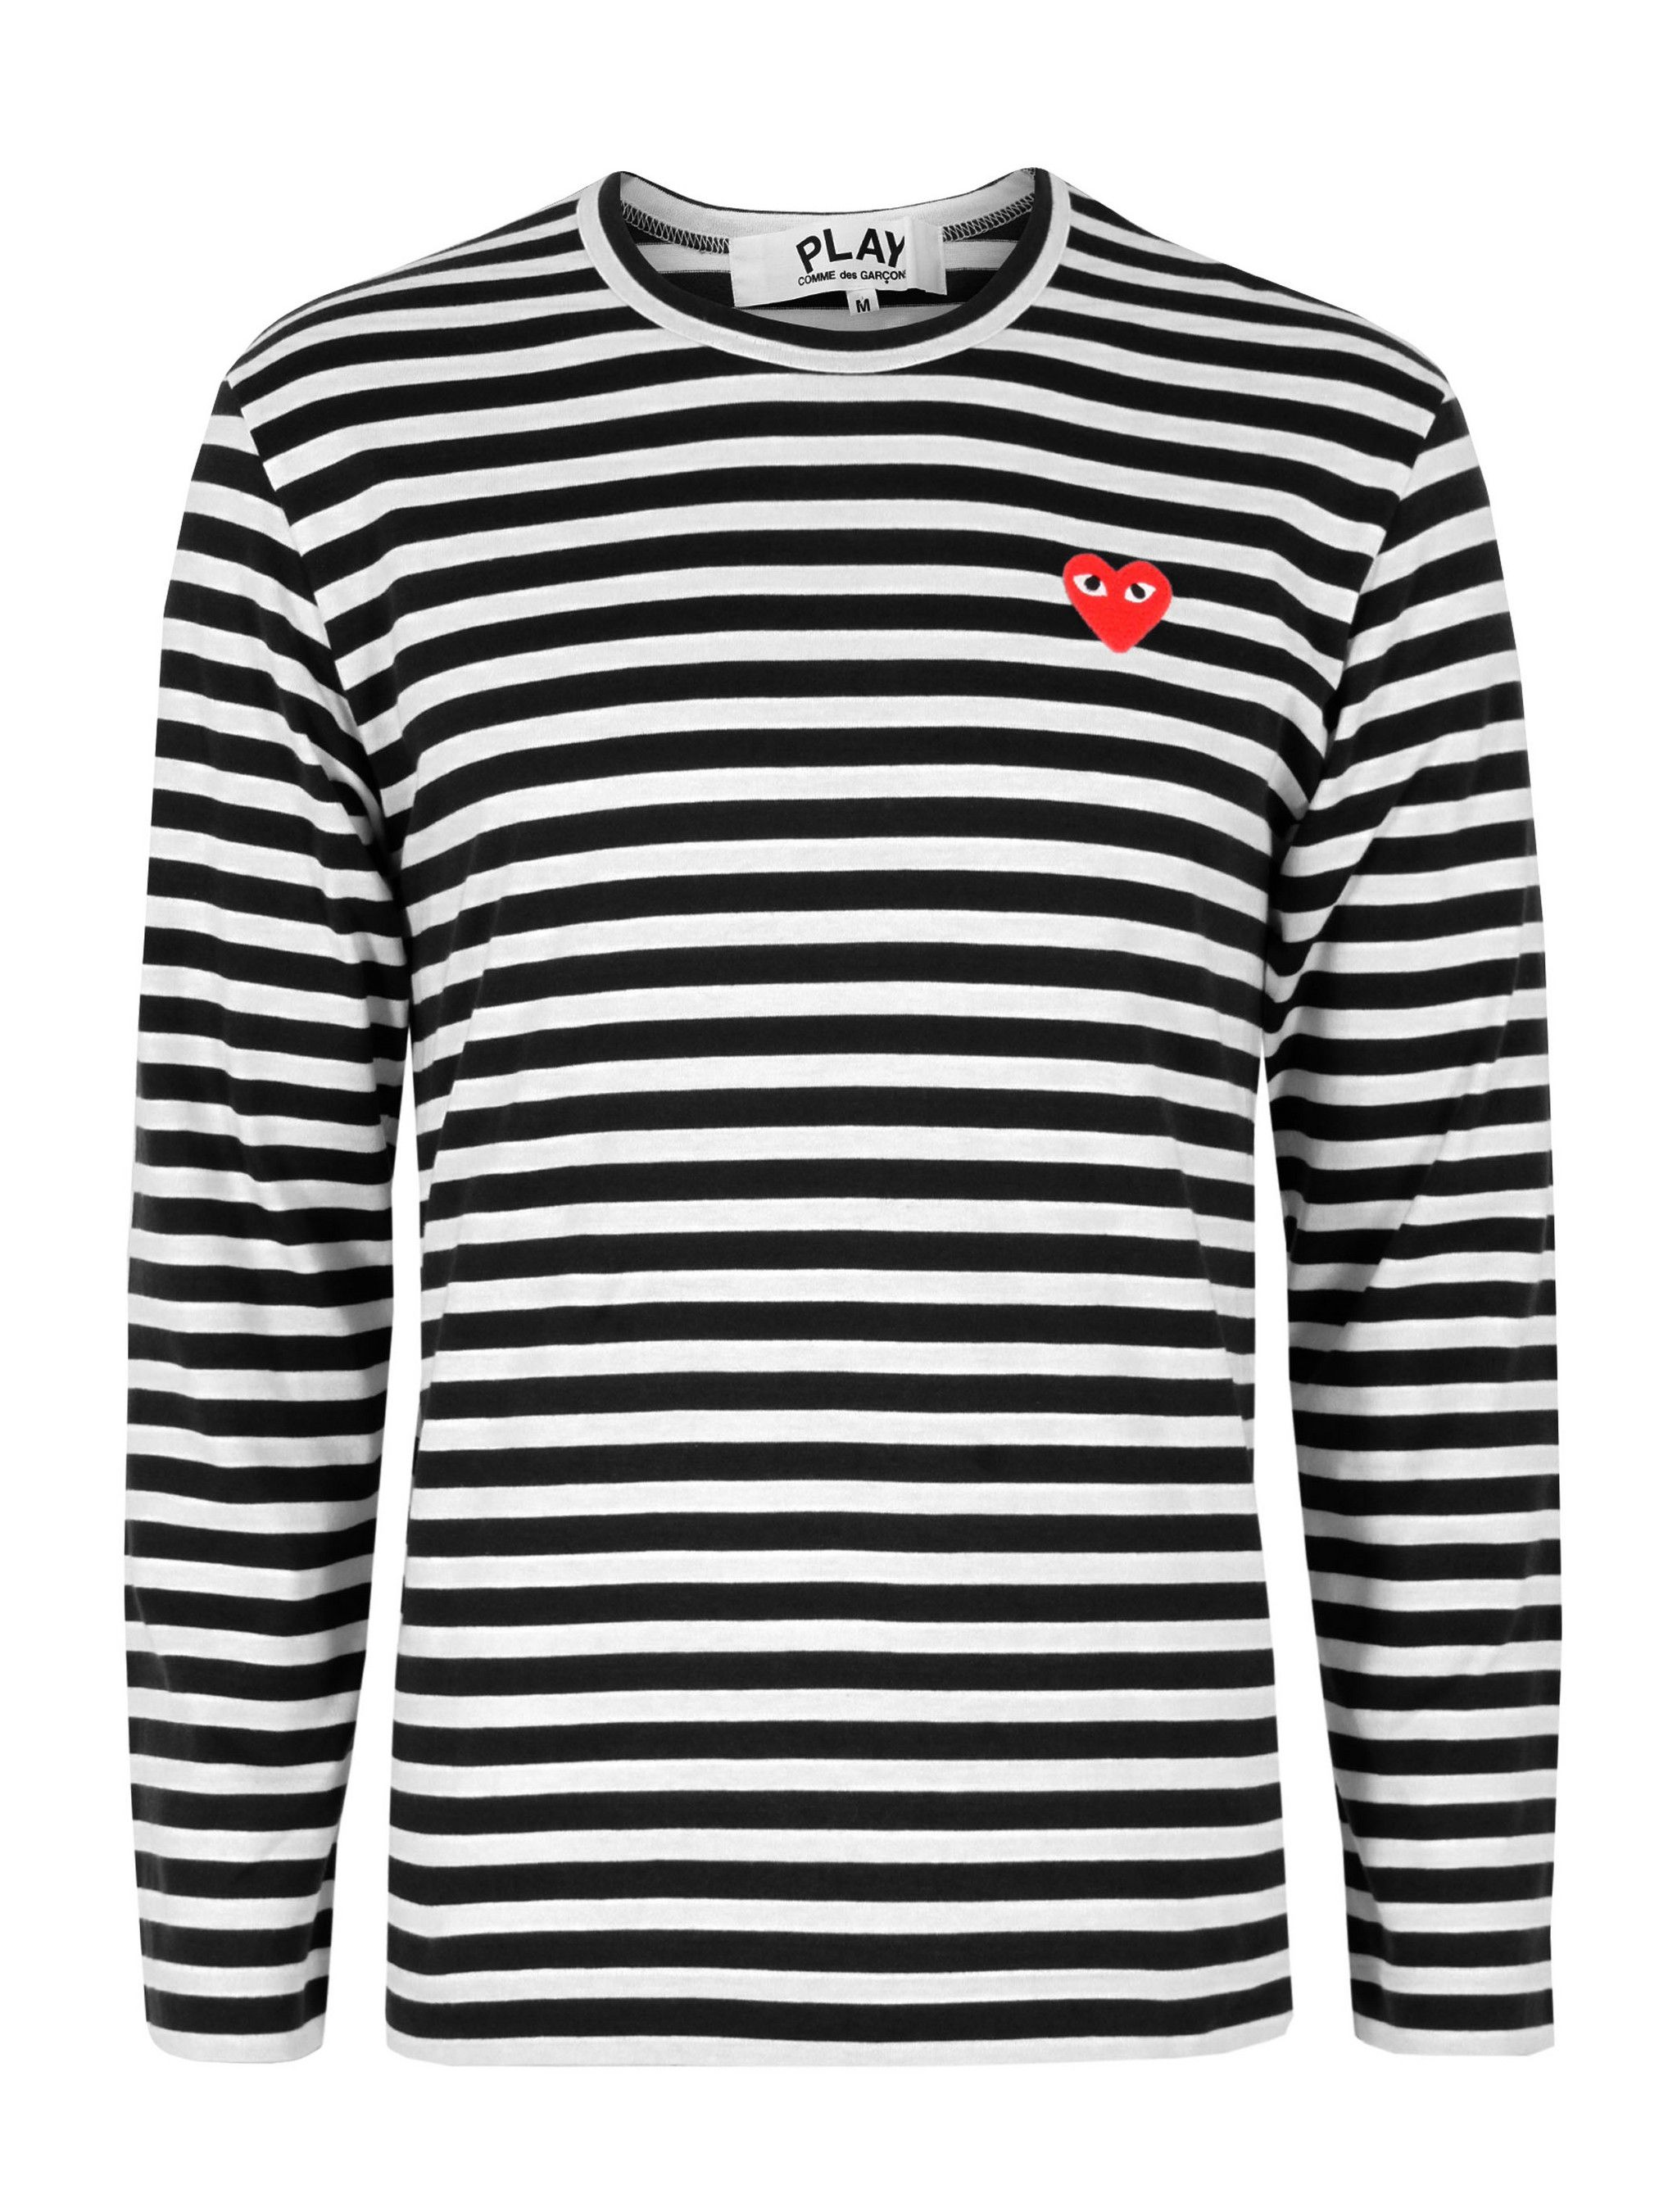 Black and white striped t shirt xxl - Comme Des Garcons Play Black Stripe T Shirt